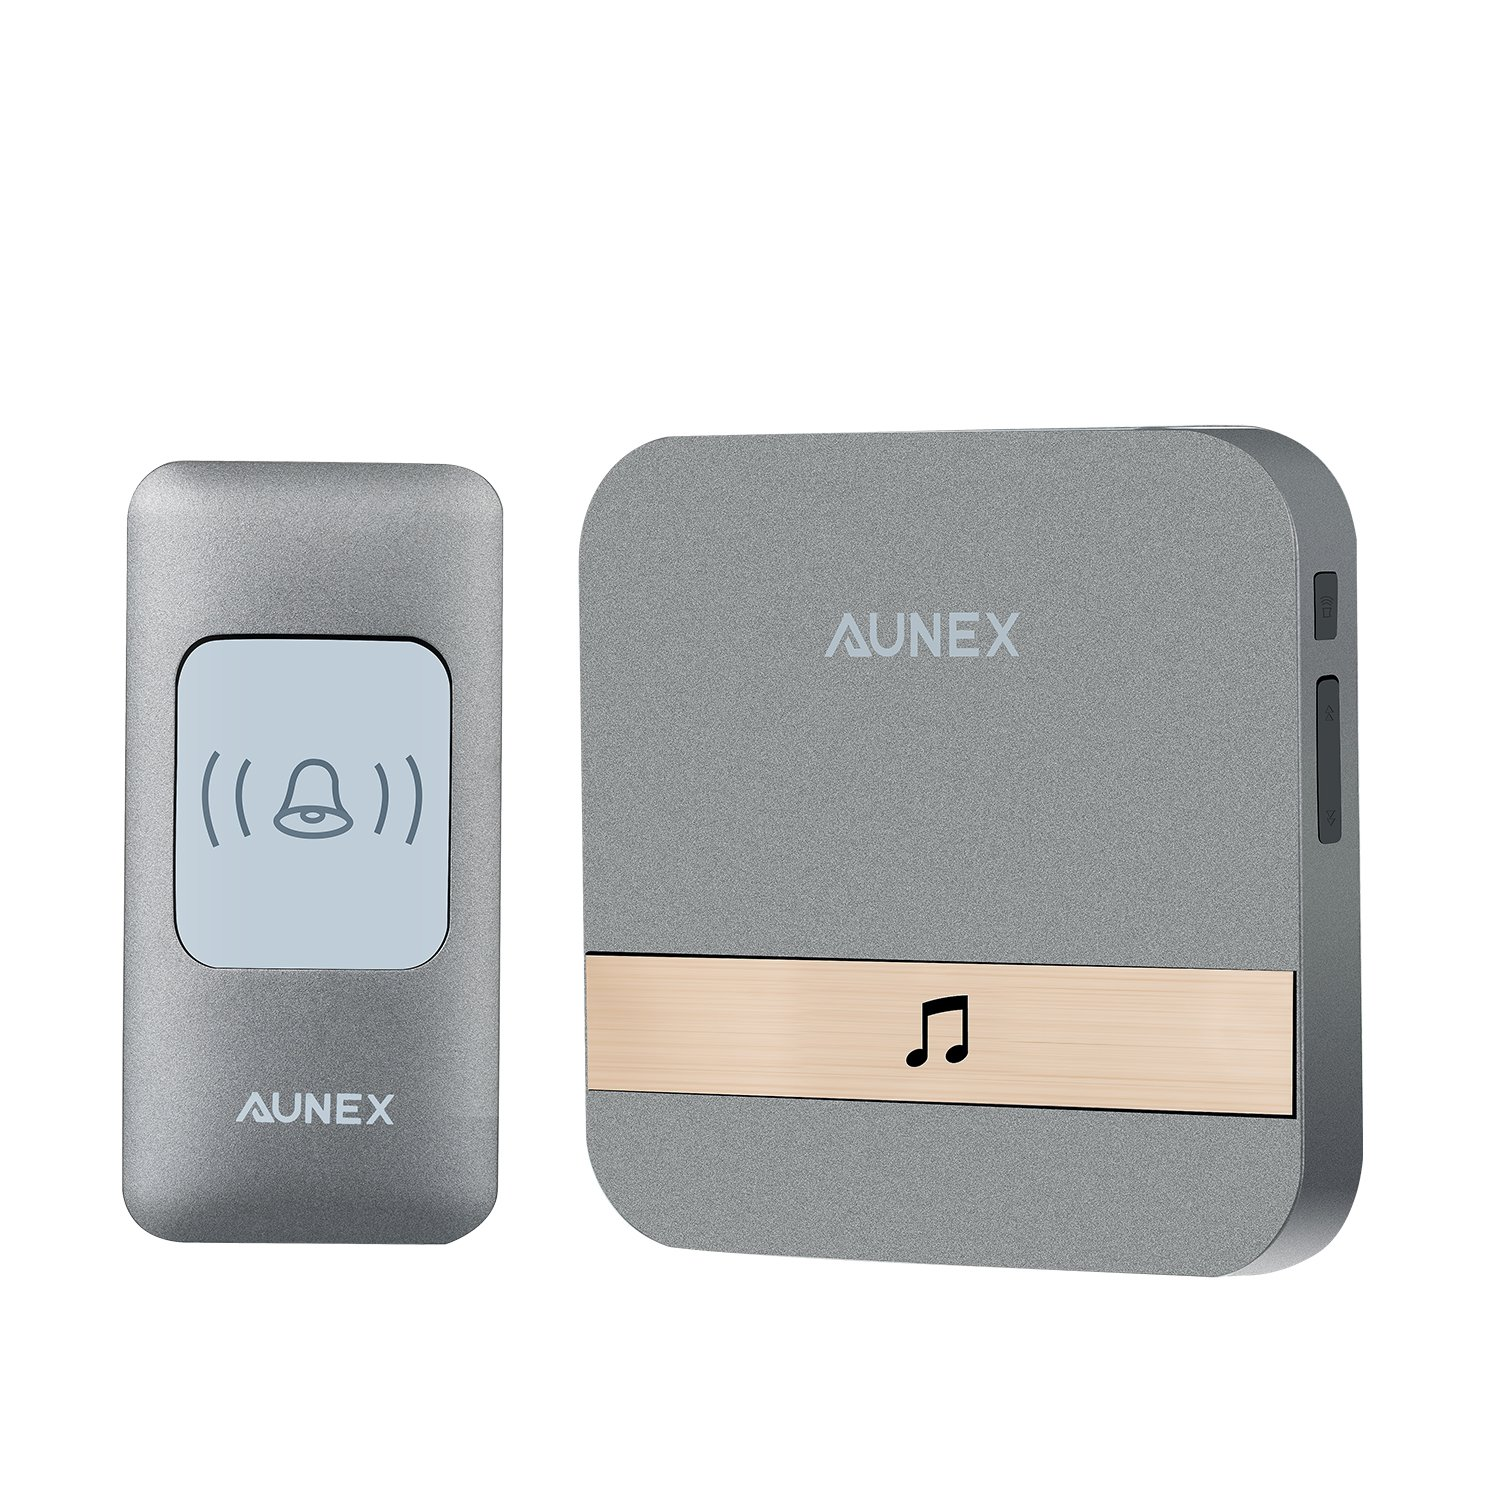 Wireless Doorbell AUNEX Doorbell Chime Kit smart doorbell Operating at Over 1000 Feet with 1 Plug-In Receivers,1 Push Button Transmitter, 52 Melodies, 4 Level Volume, CD Quality Sound and LED Flash